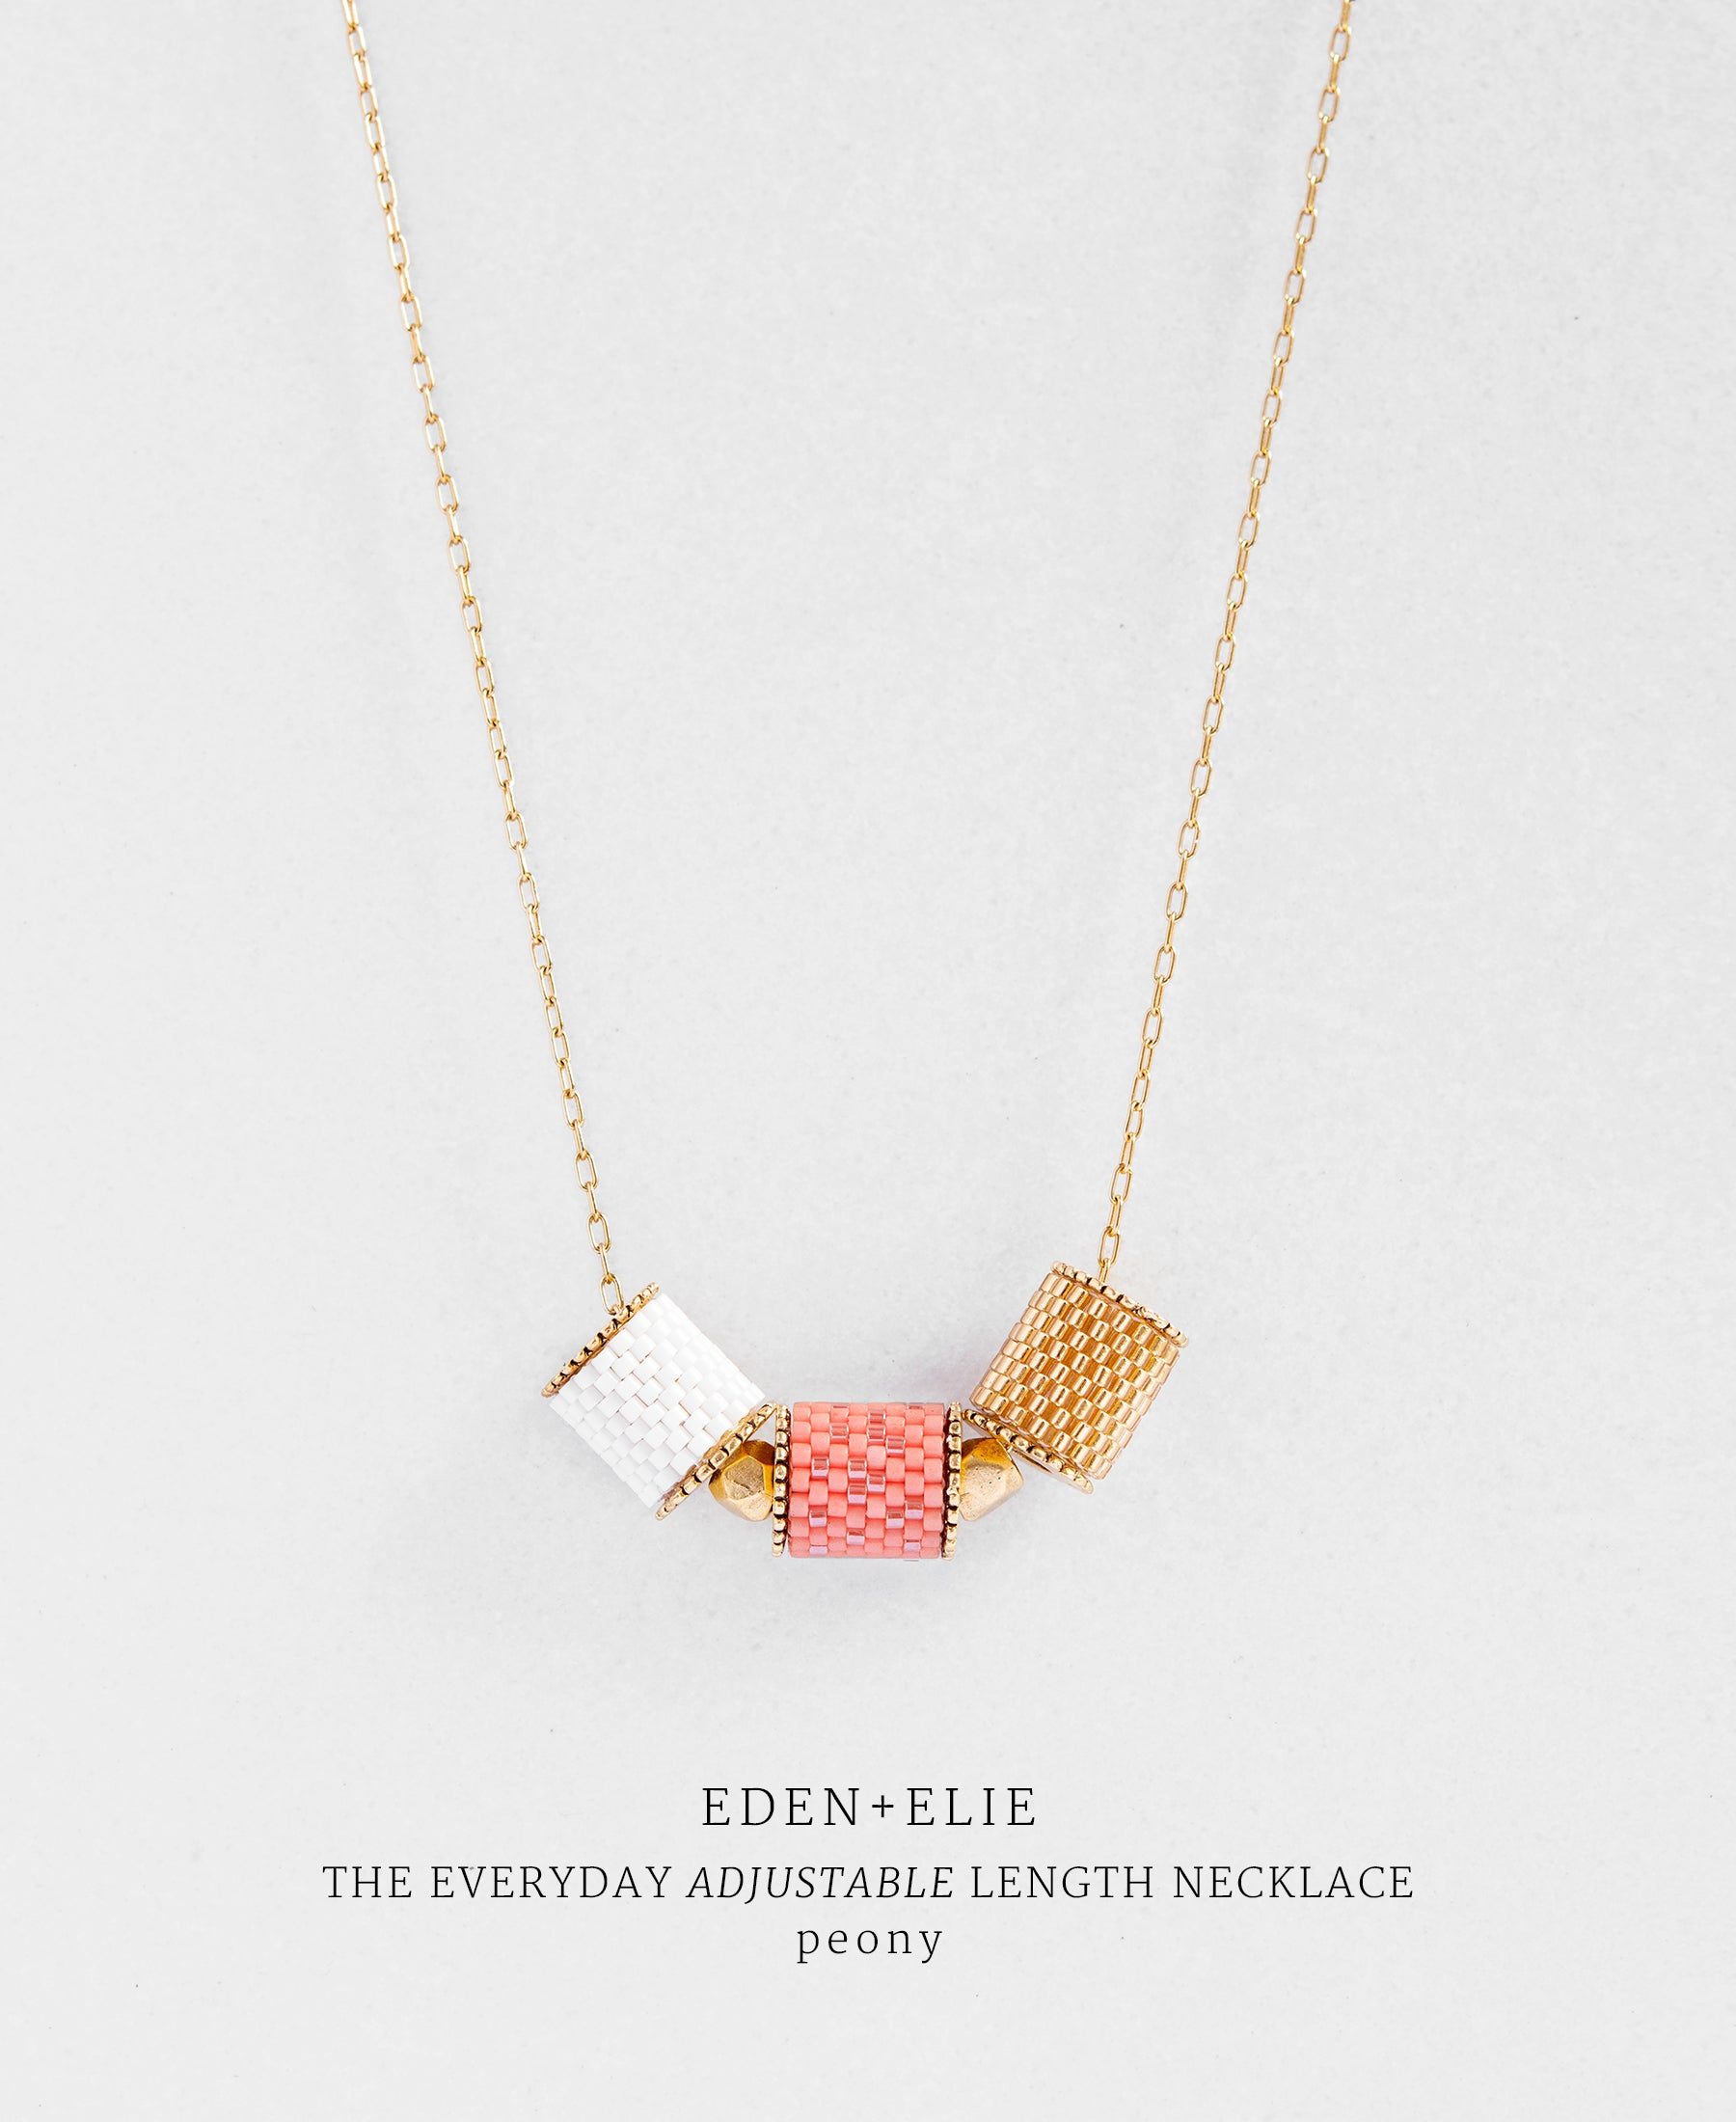 EDEN + ELIE Everyday adjustable length necklace - peony pink